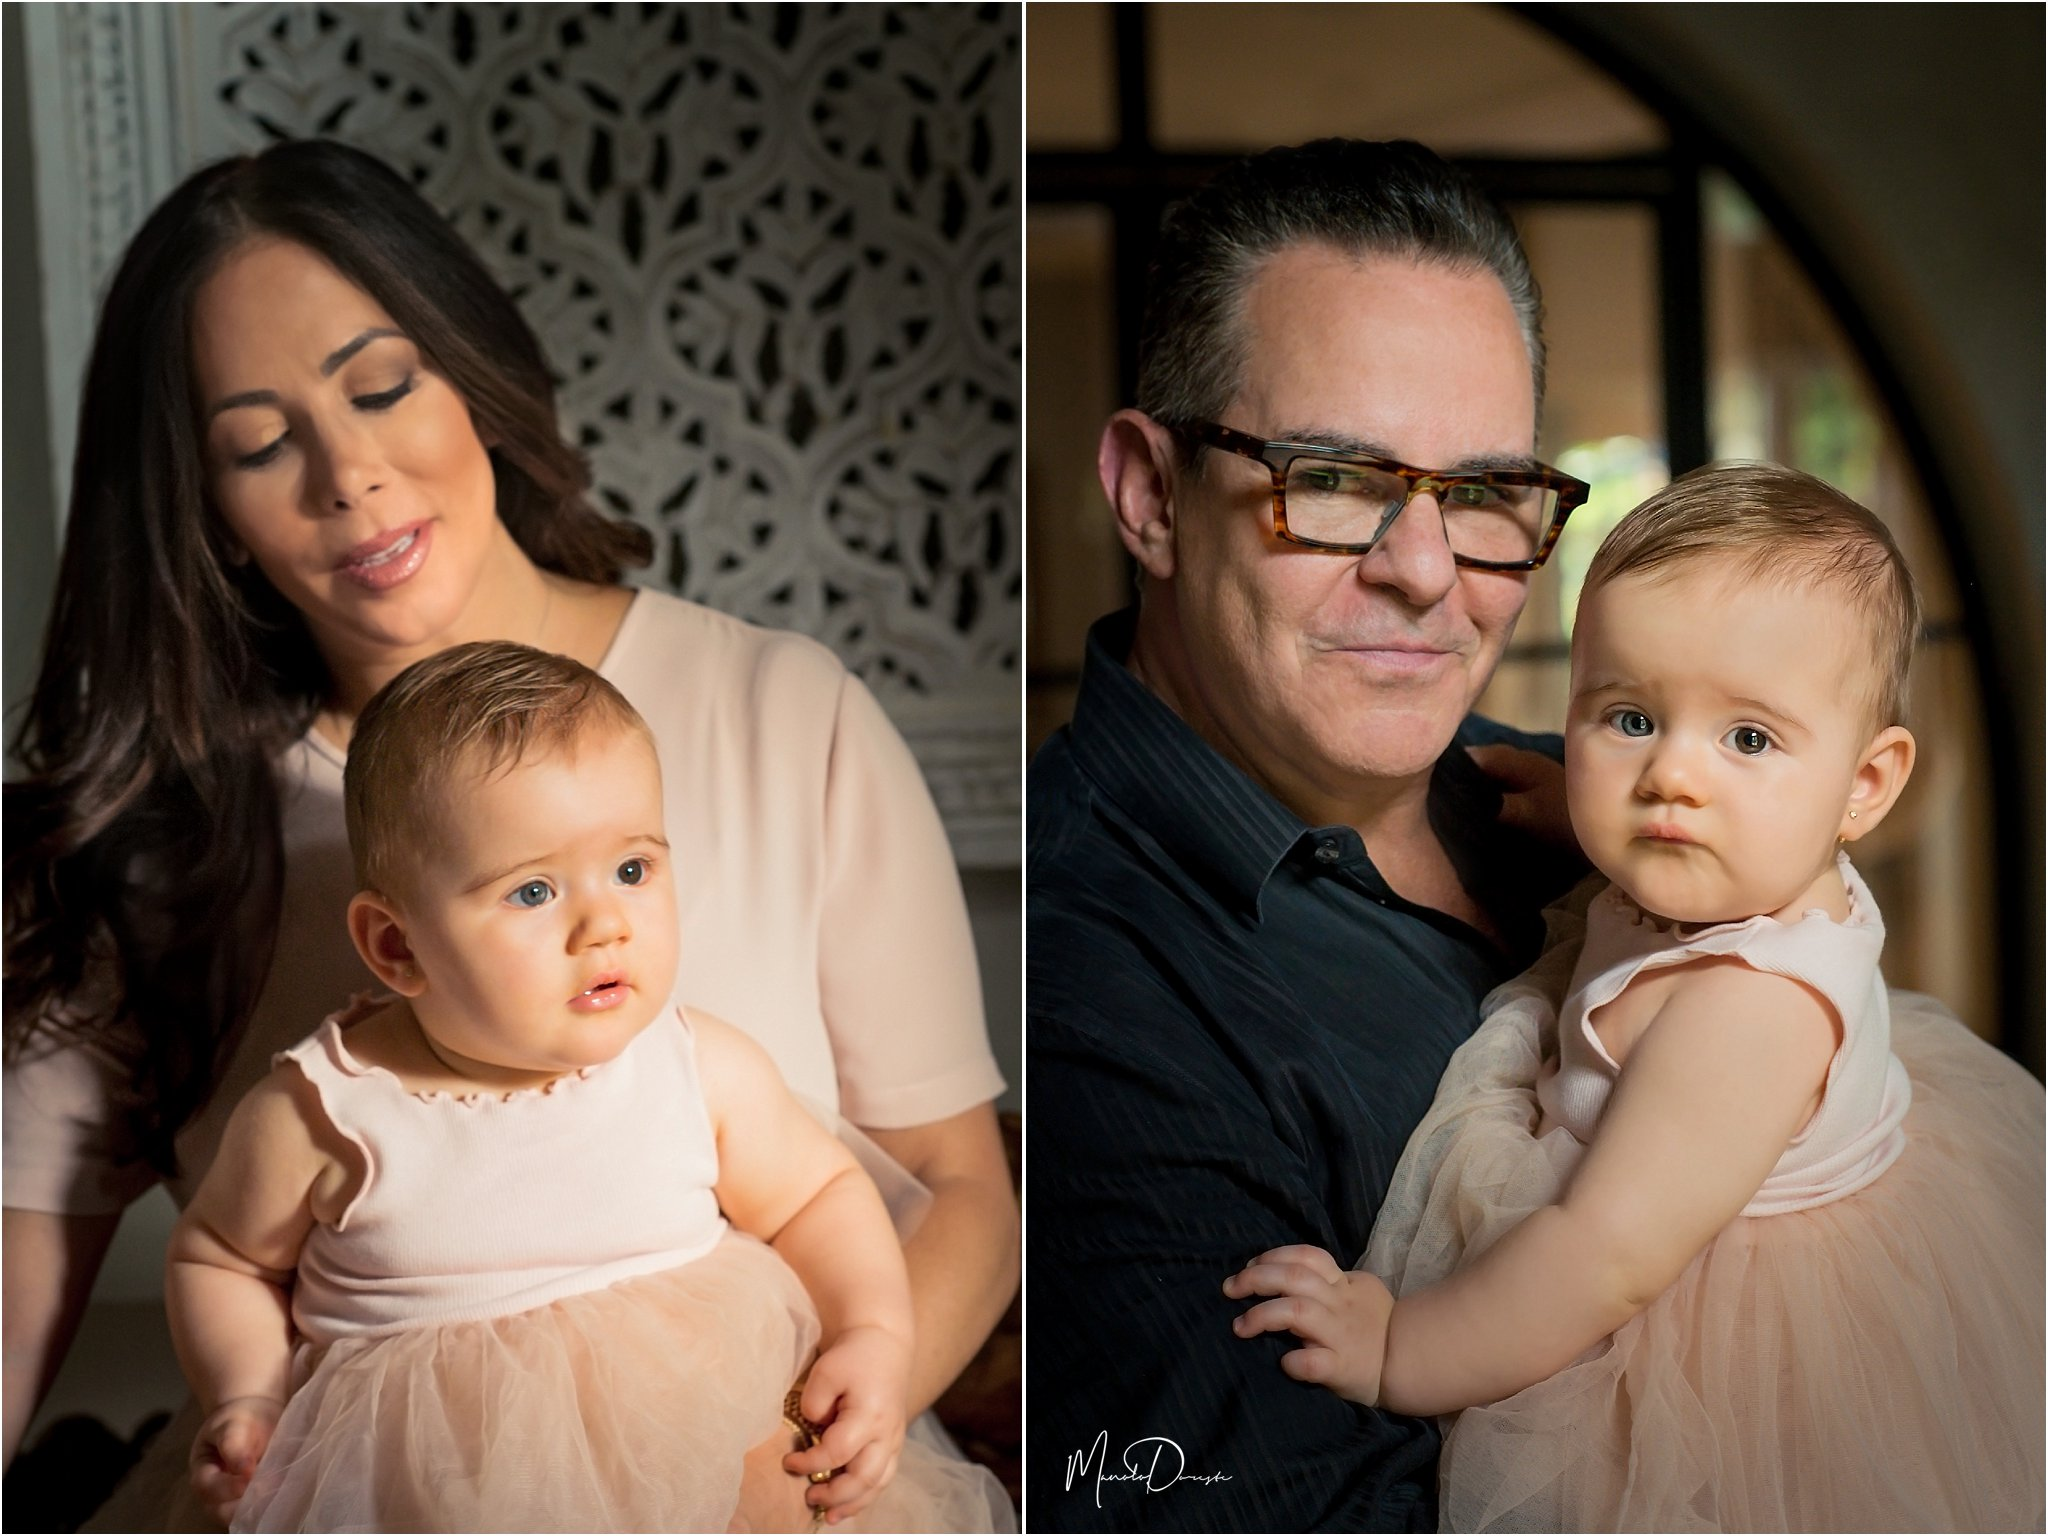 0307_ManoloDoreste_InFocusStudios_Wedding_Family_Photography_Miami_MiamiPhotographer.jpg